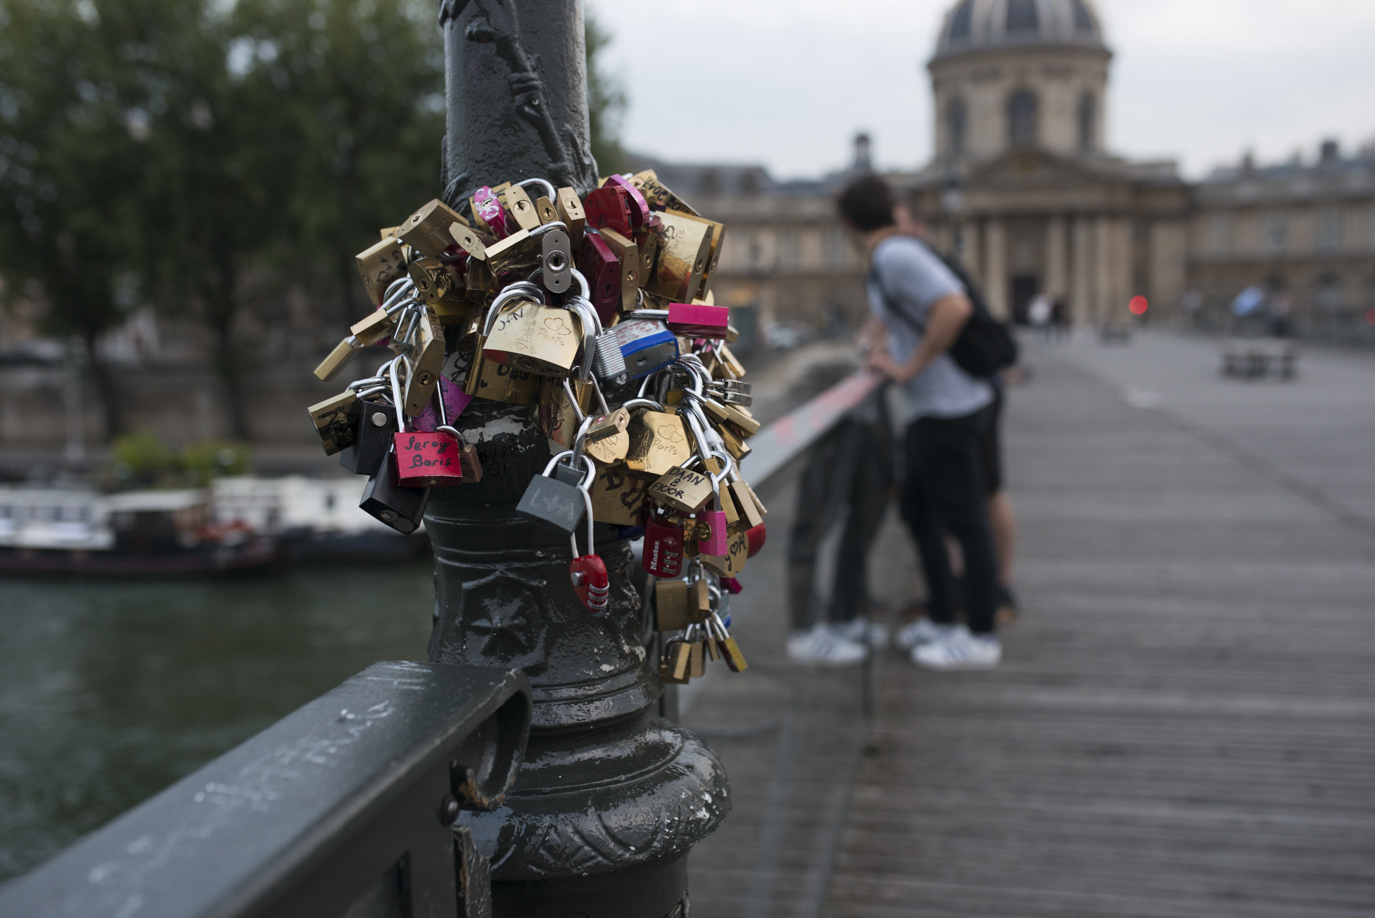 Maybe here back at the Pont des Arts?